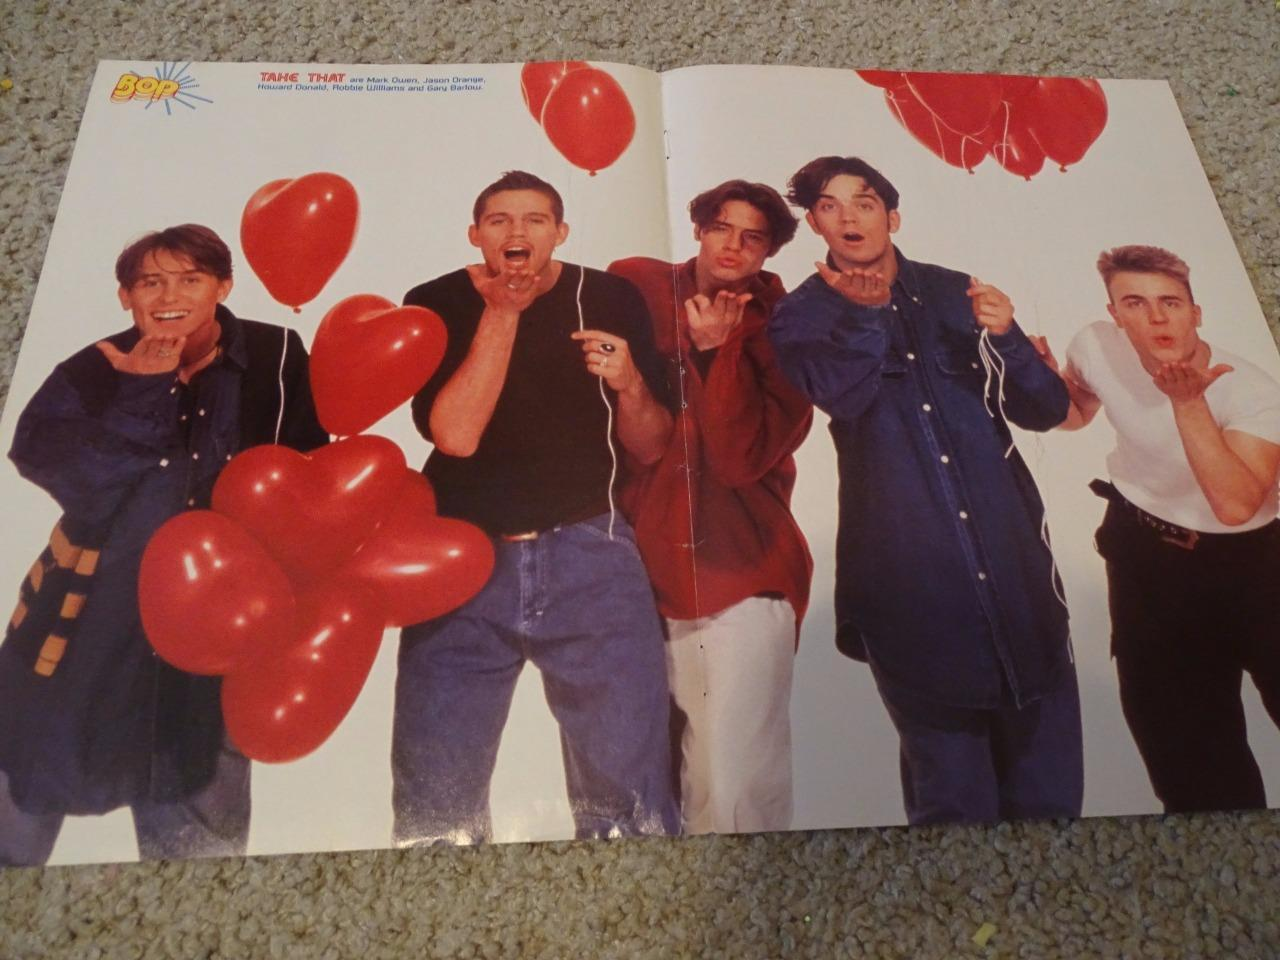 Take That teen magazine poster clipping Robbie Williams Mark Owen Bop Teen Beat